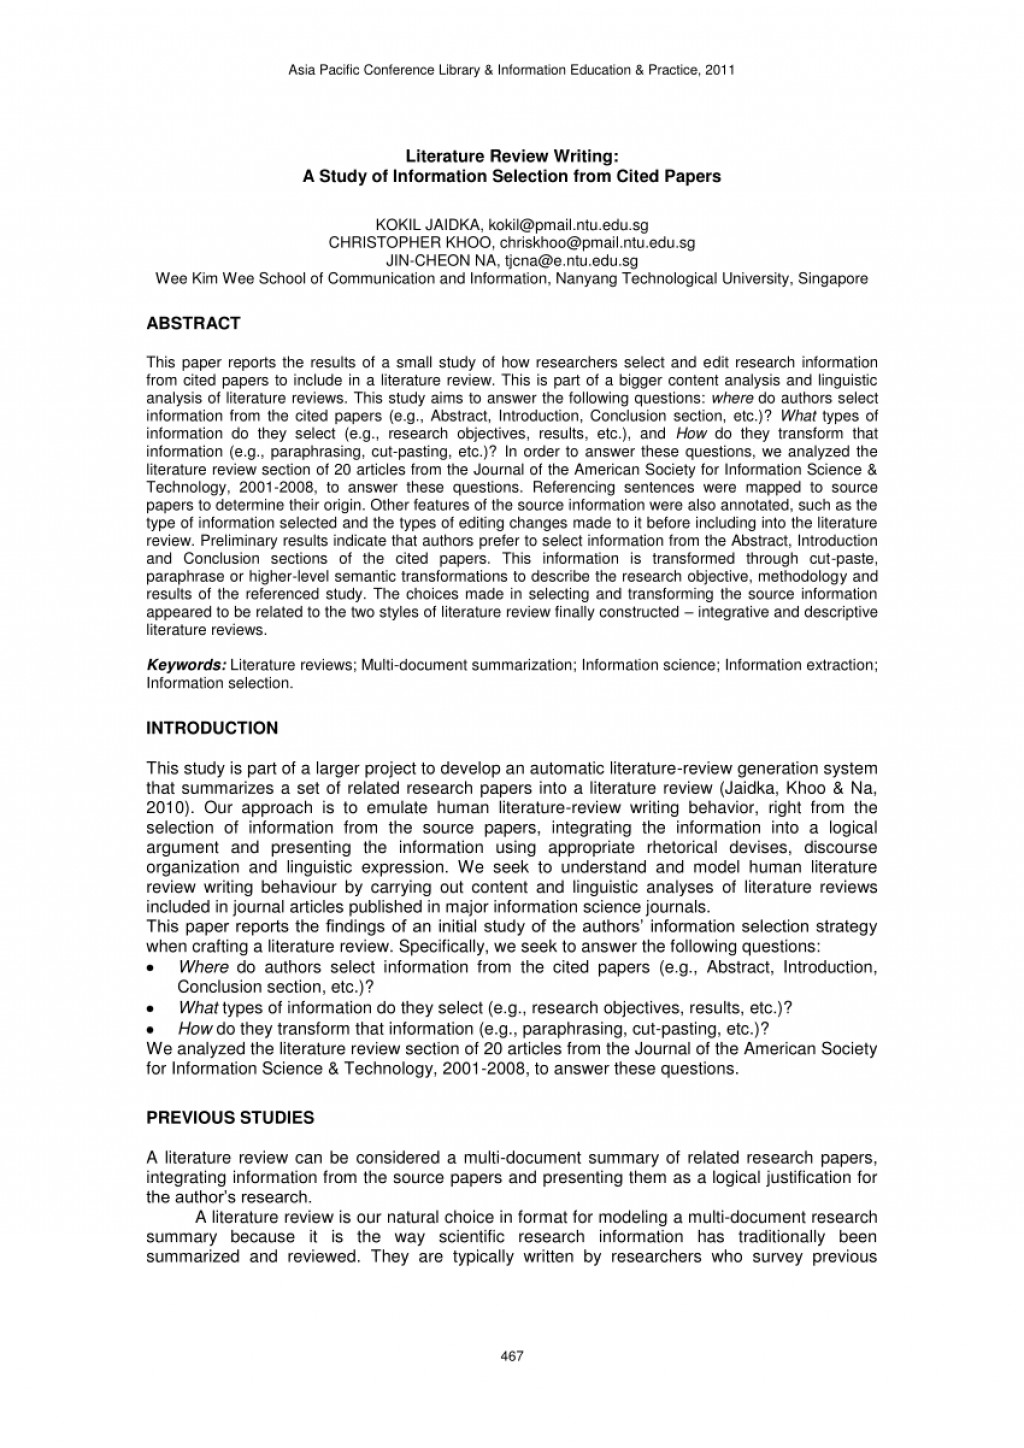 003 Citing Sources Science Research Paper Phenomenal Large